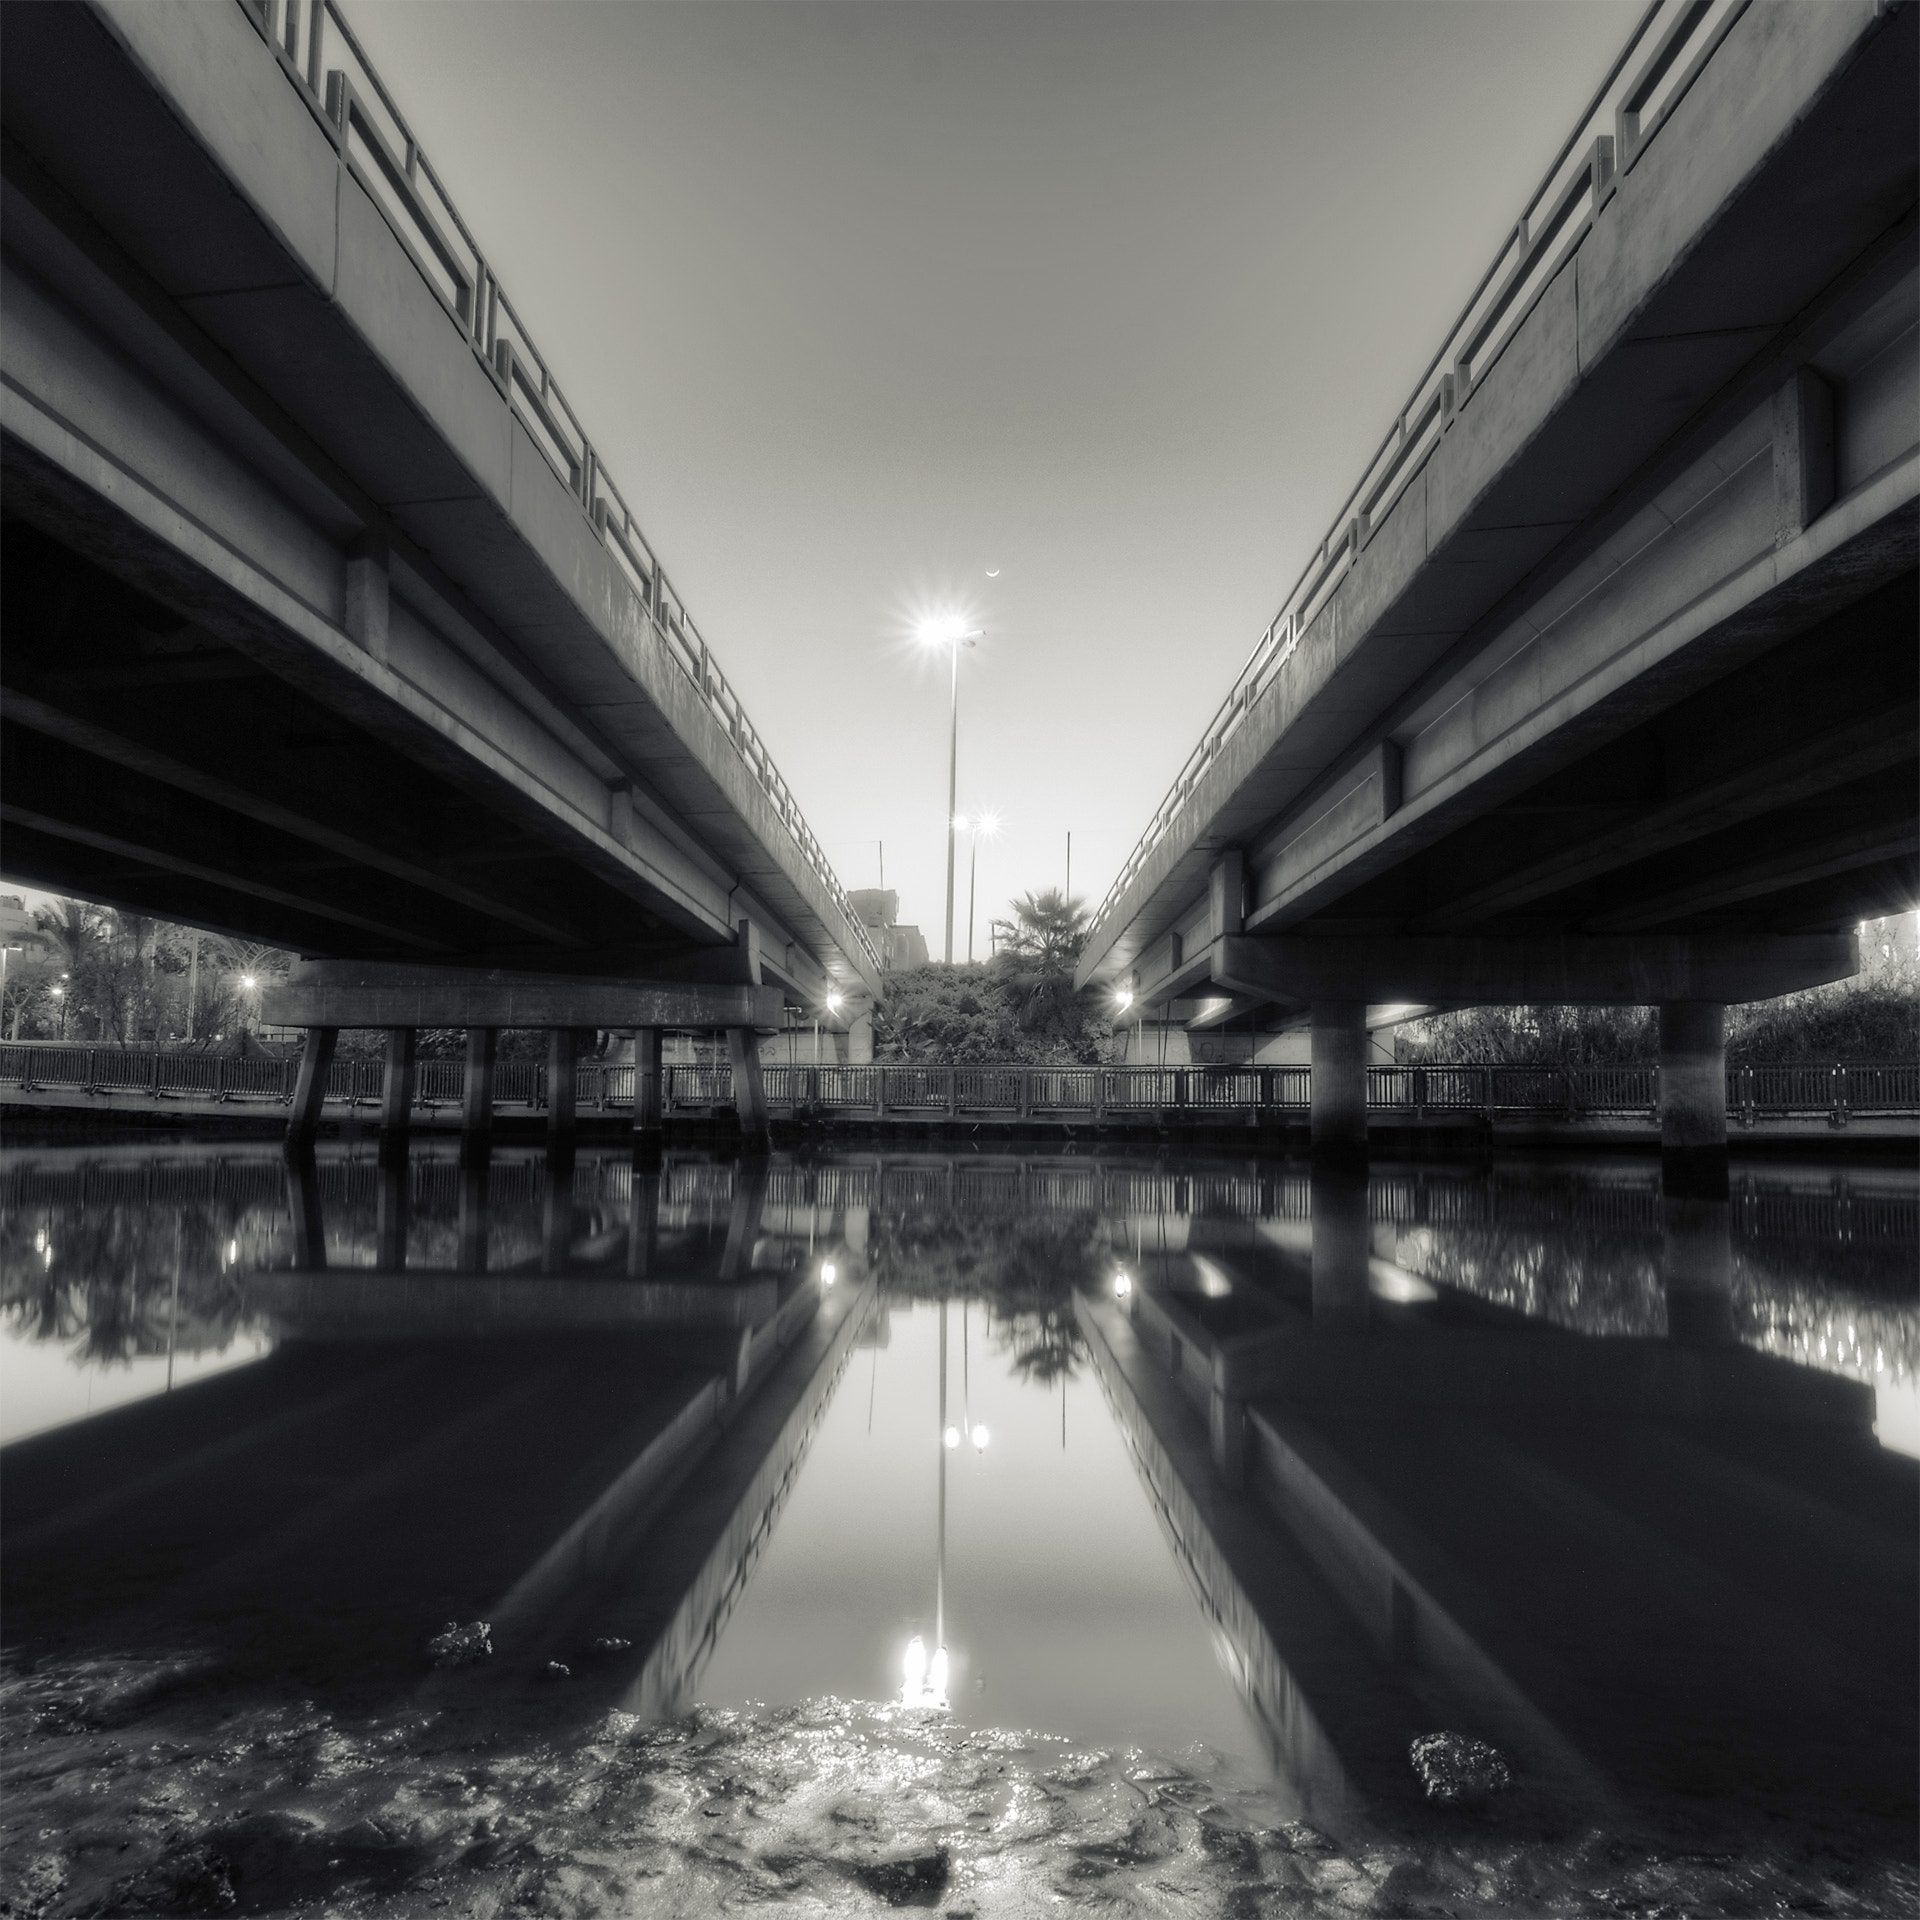 Photograph Under the Bridge by Simon Gelfand on 500px